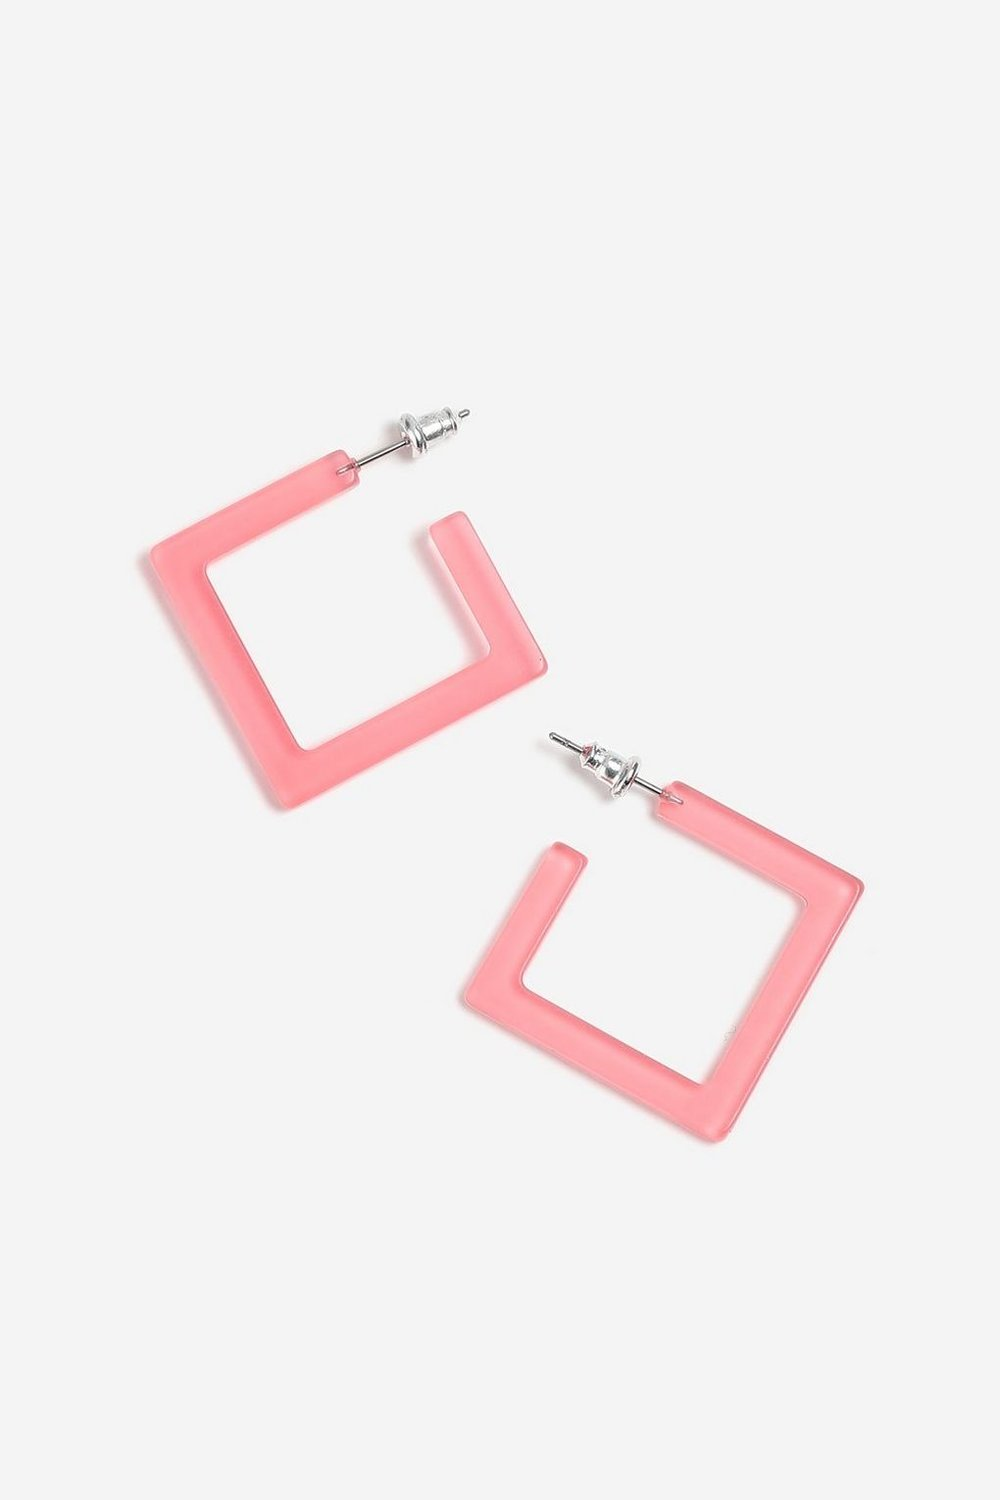 4. the EARRINGS - TOPSHOP: Plastic Square Hoop Earrings, £6.50We at PHASER are huge fans of statement earrings, and these are a great and simple way to incorporate the pastel trend into your look.